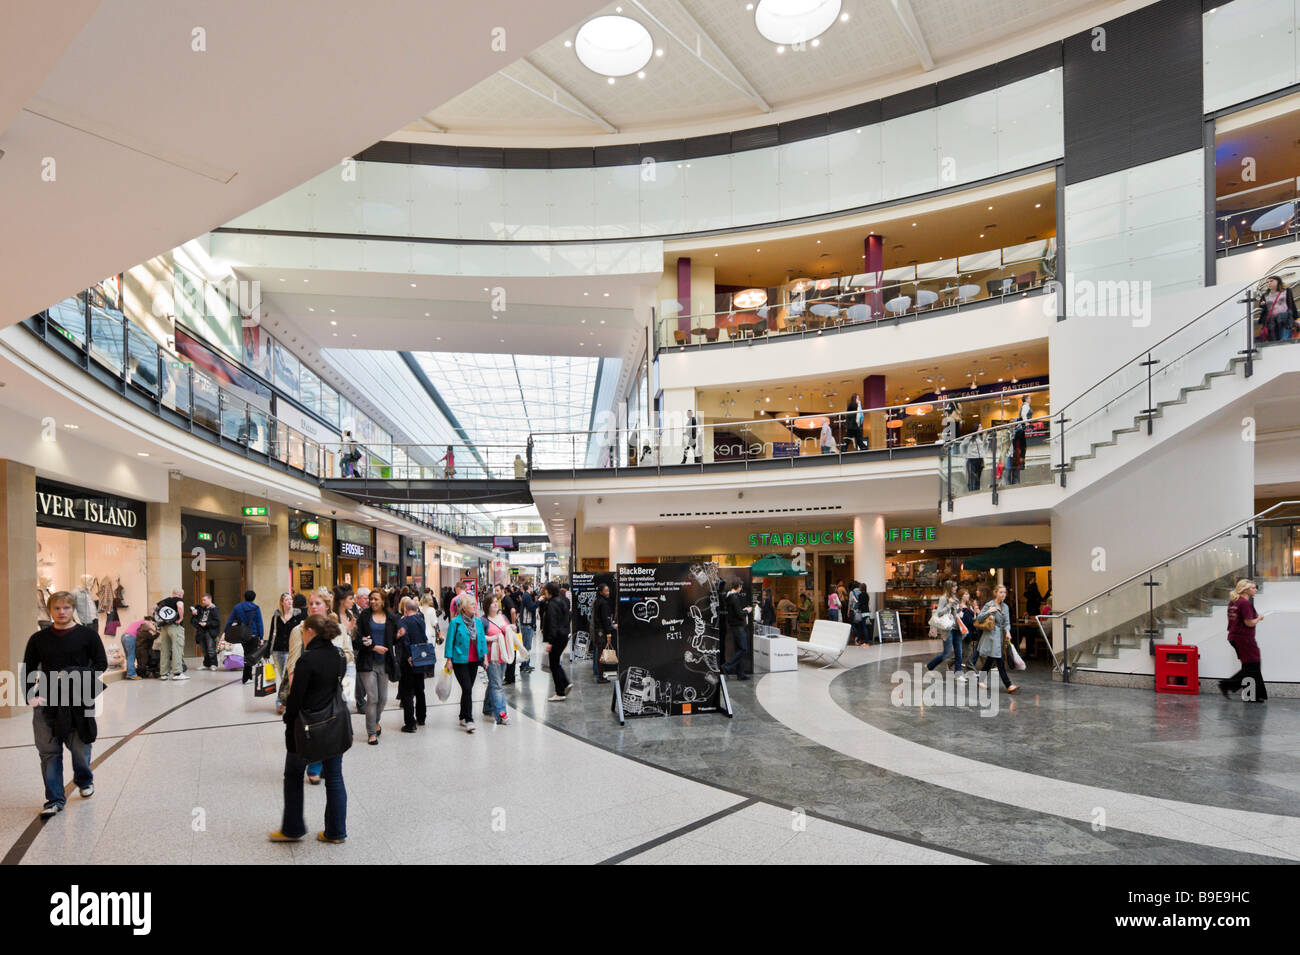 Shops and stores in the Arndale Centre, Manchester, England - Stock Image